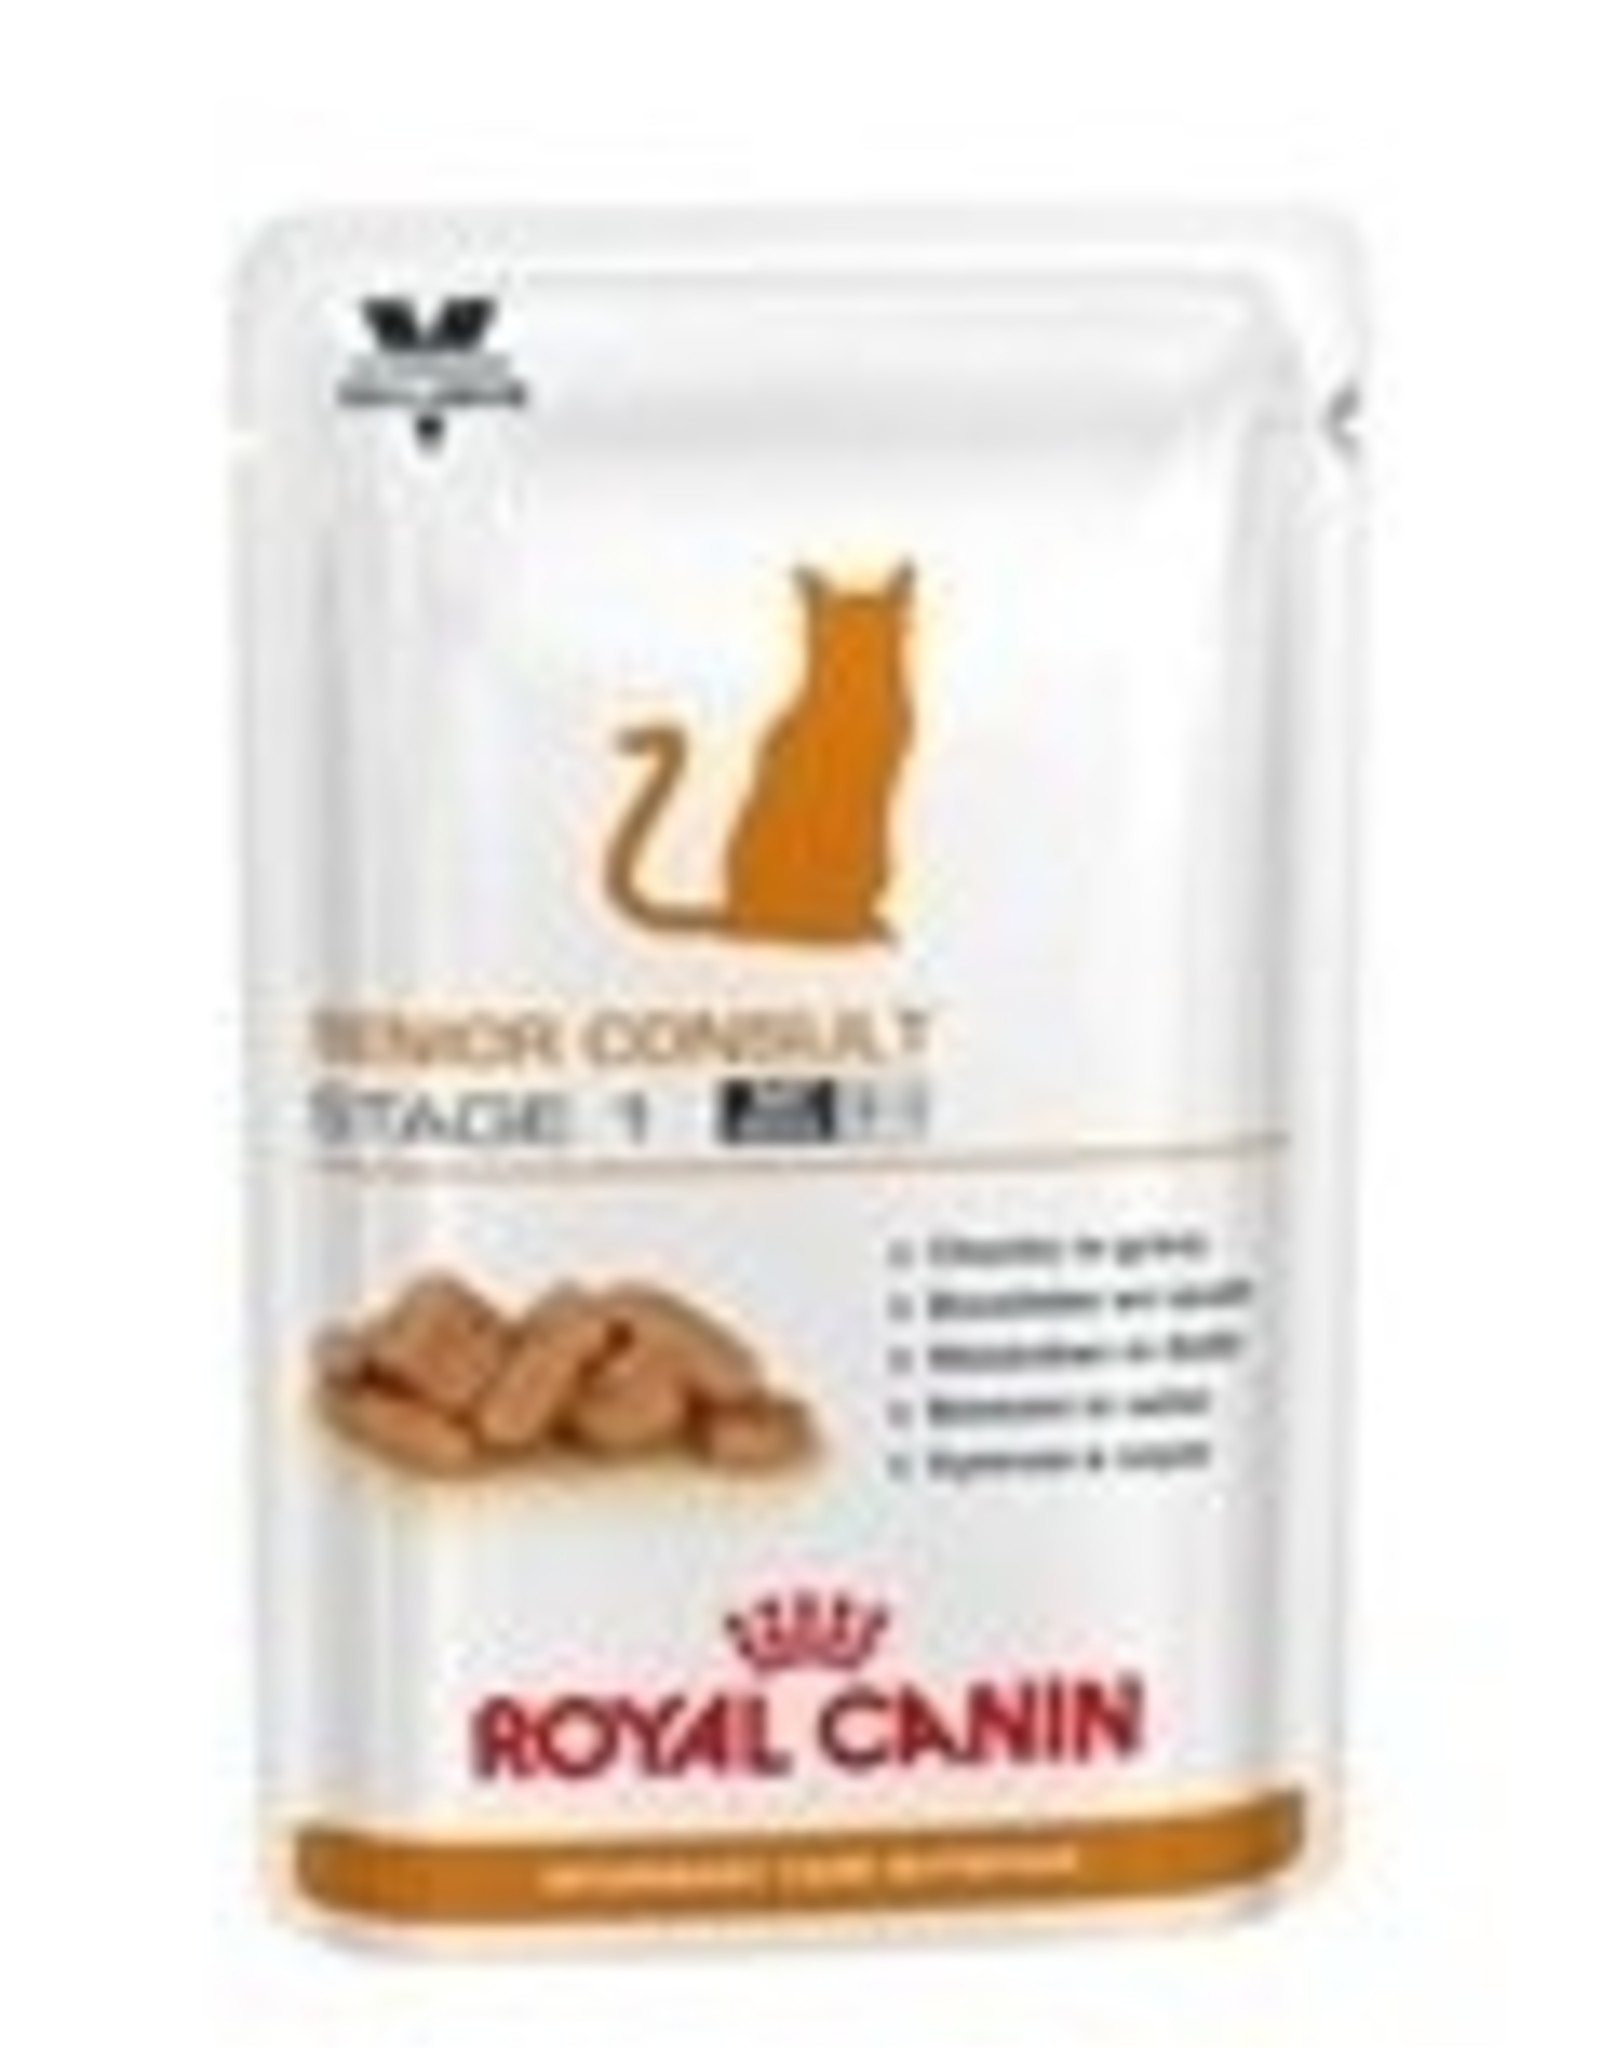 Royal Canin Royal Canin Senior Consult Stage 1 Katze Beutel 12x100gr